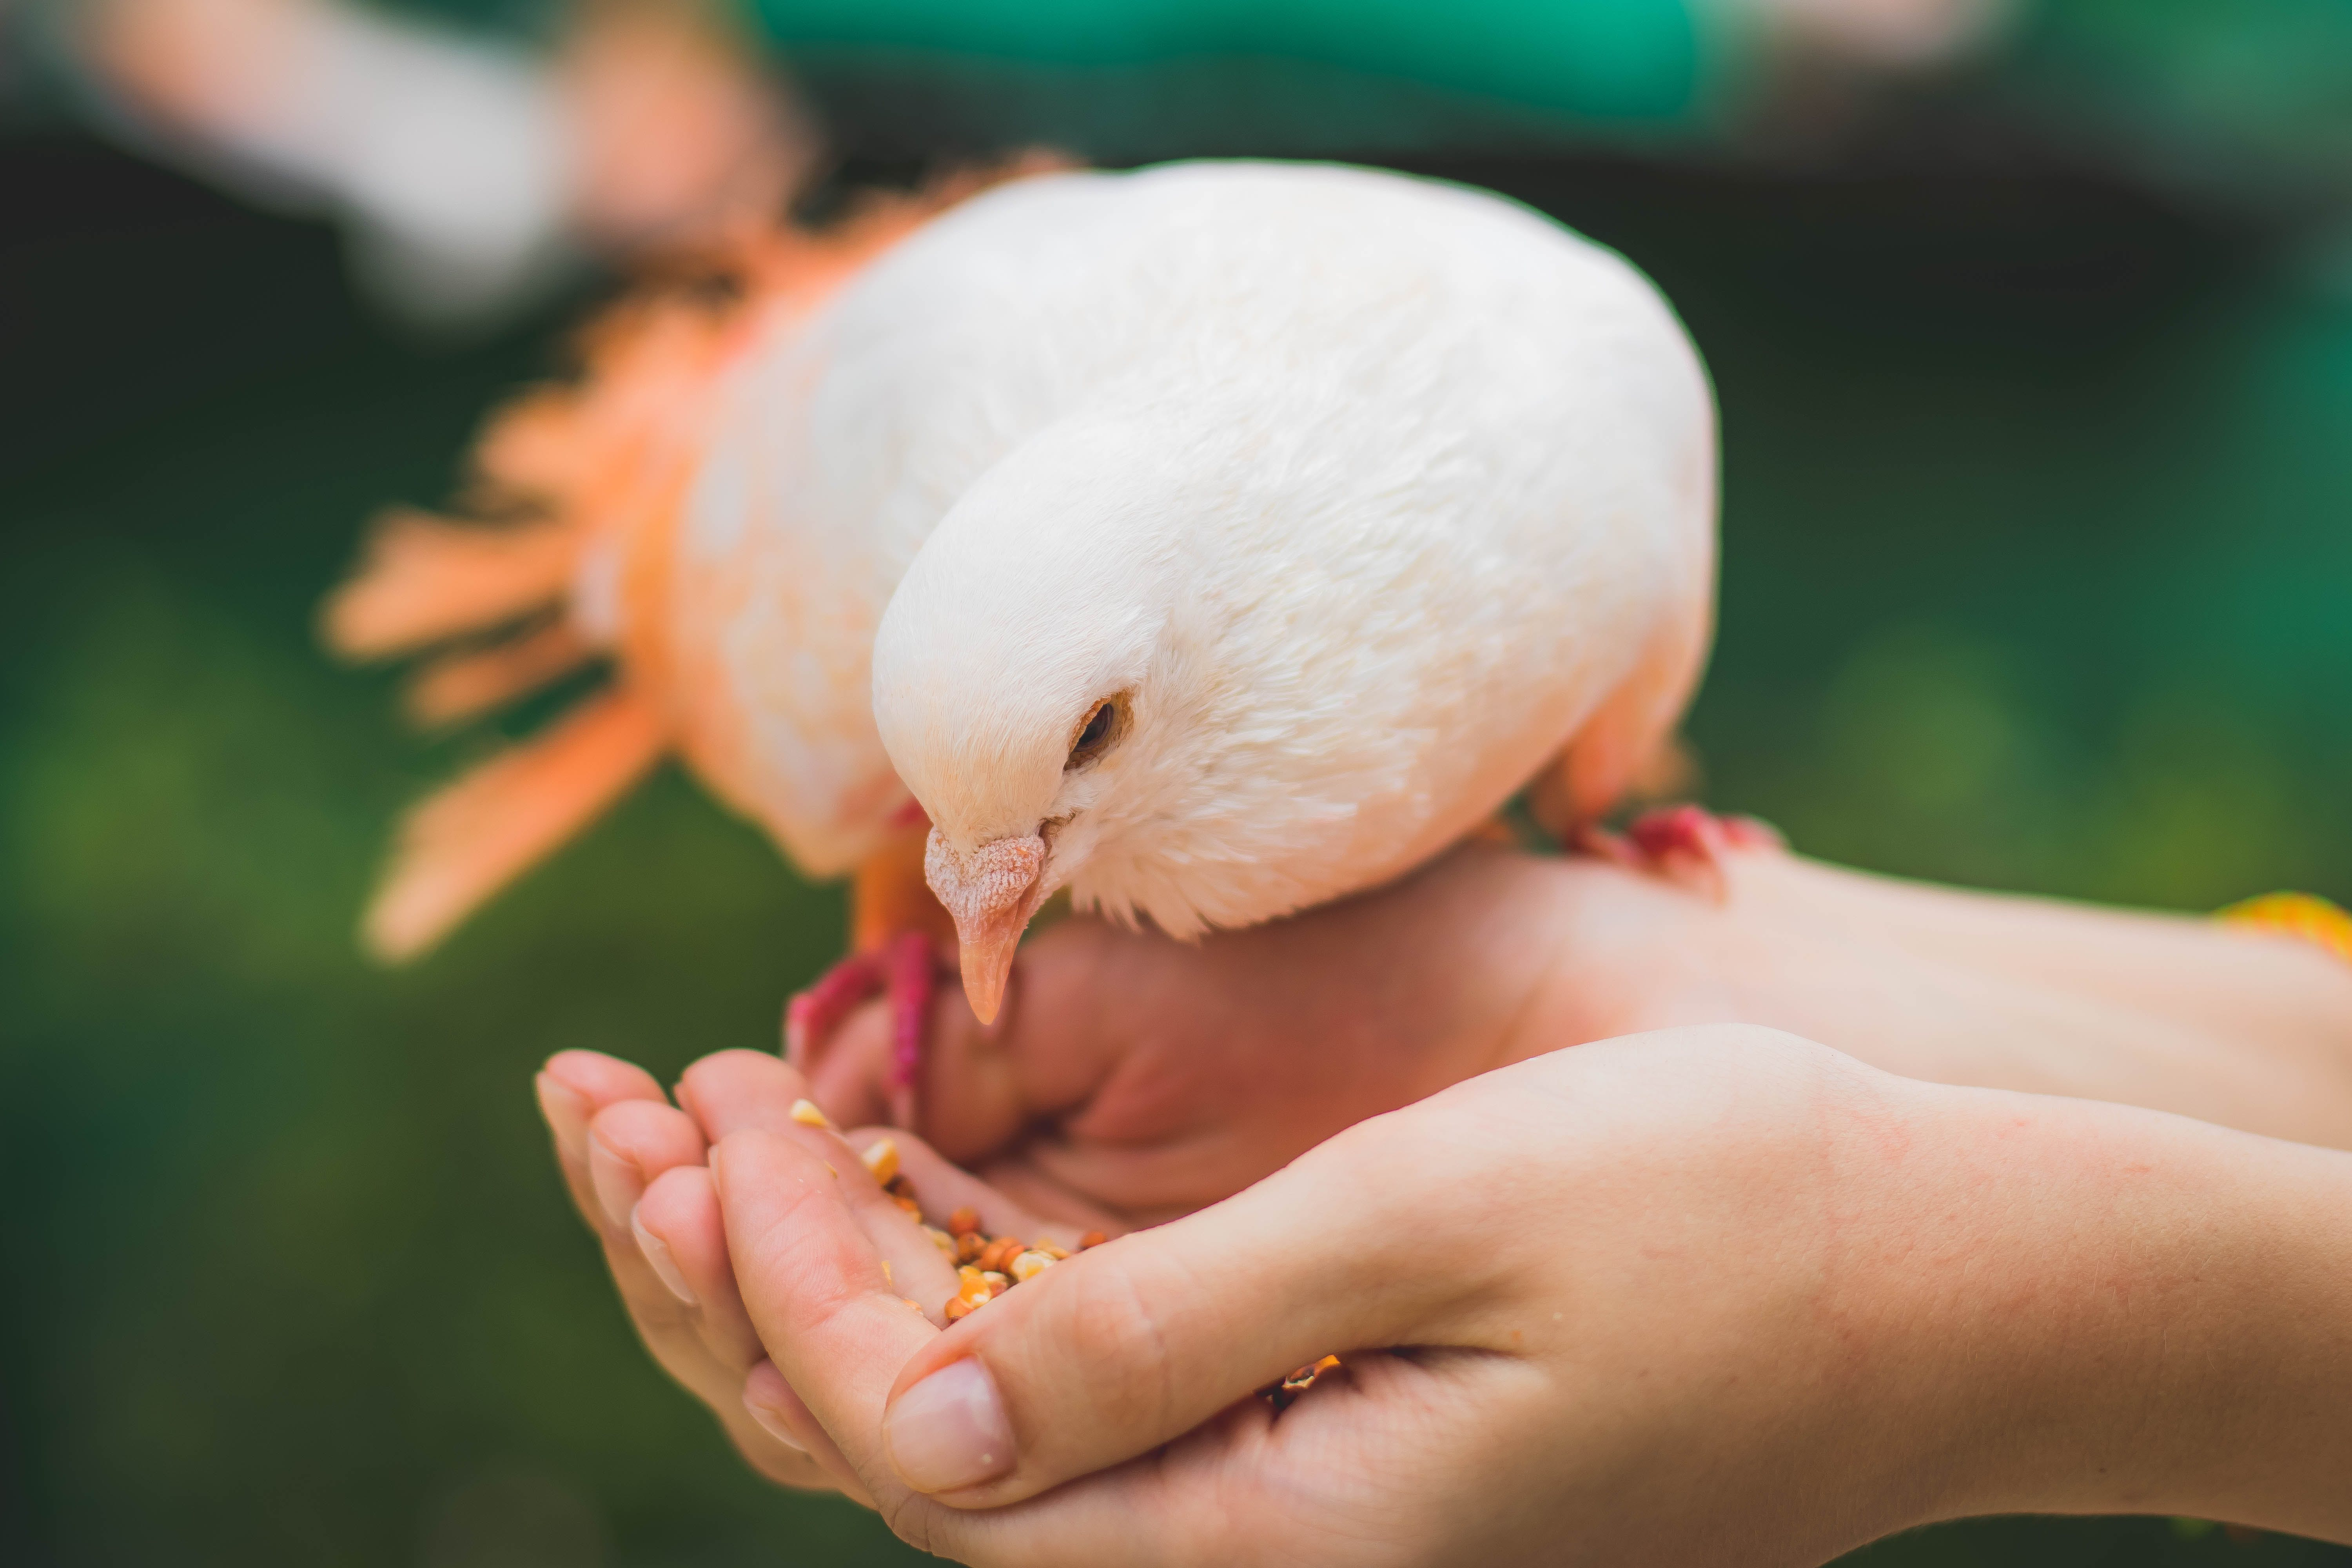 Close Up Photograph Of Person Feeding White Pigeon